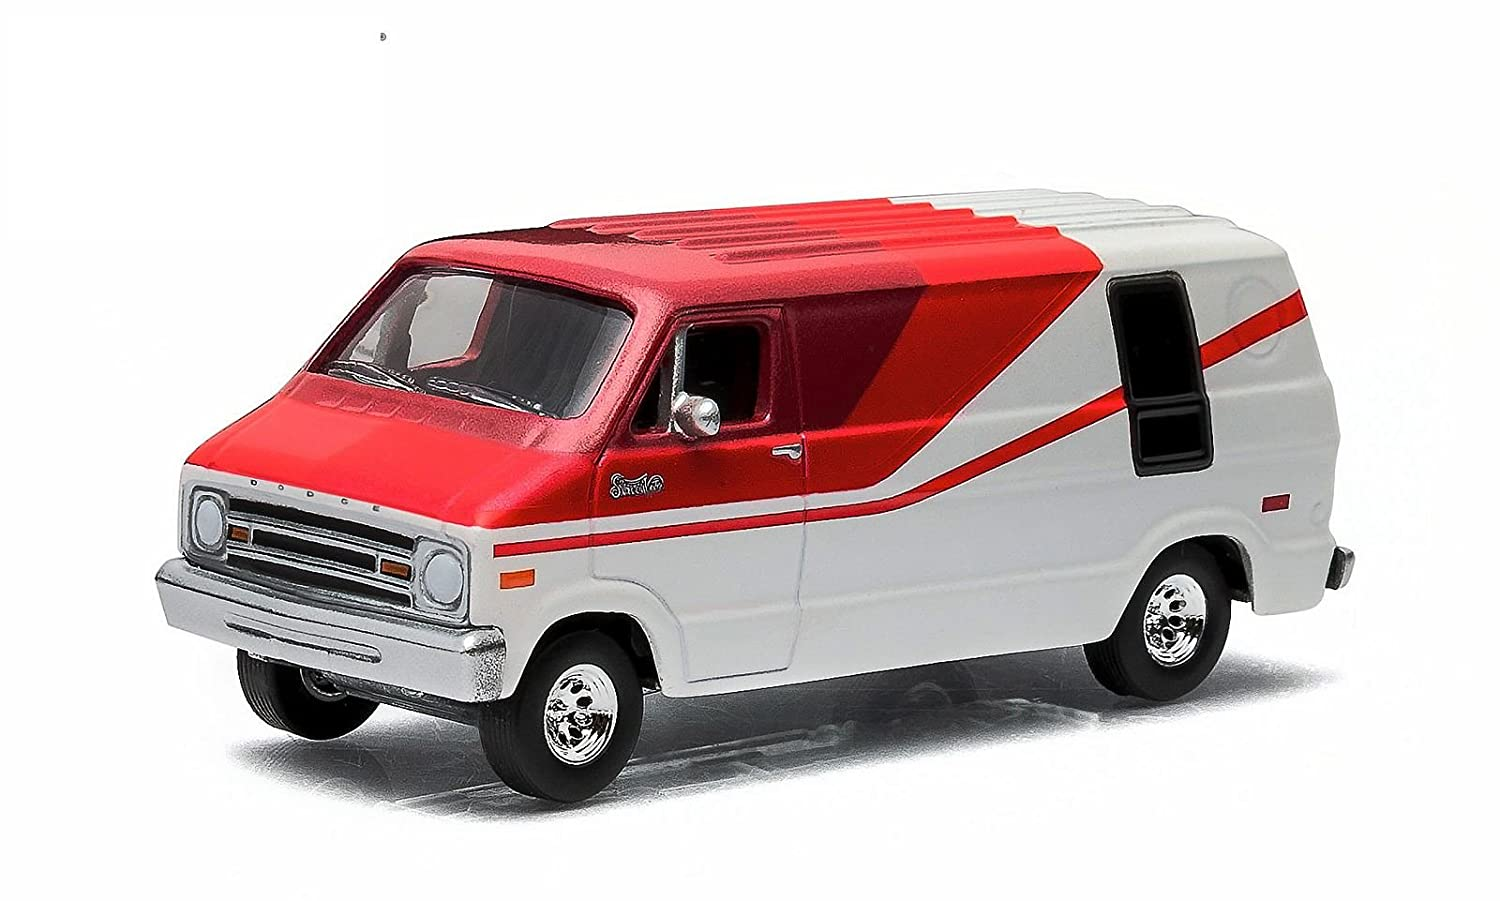 Greenlight 29810 D GreenLight Diecast Car Red